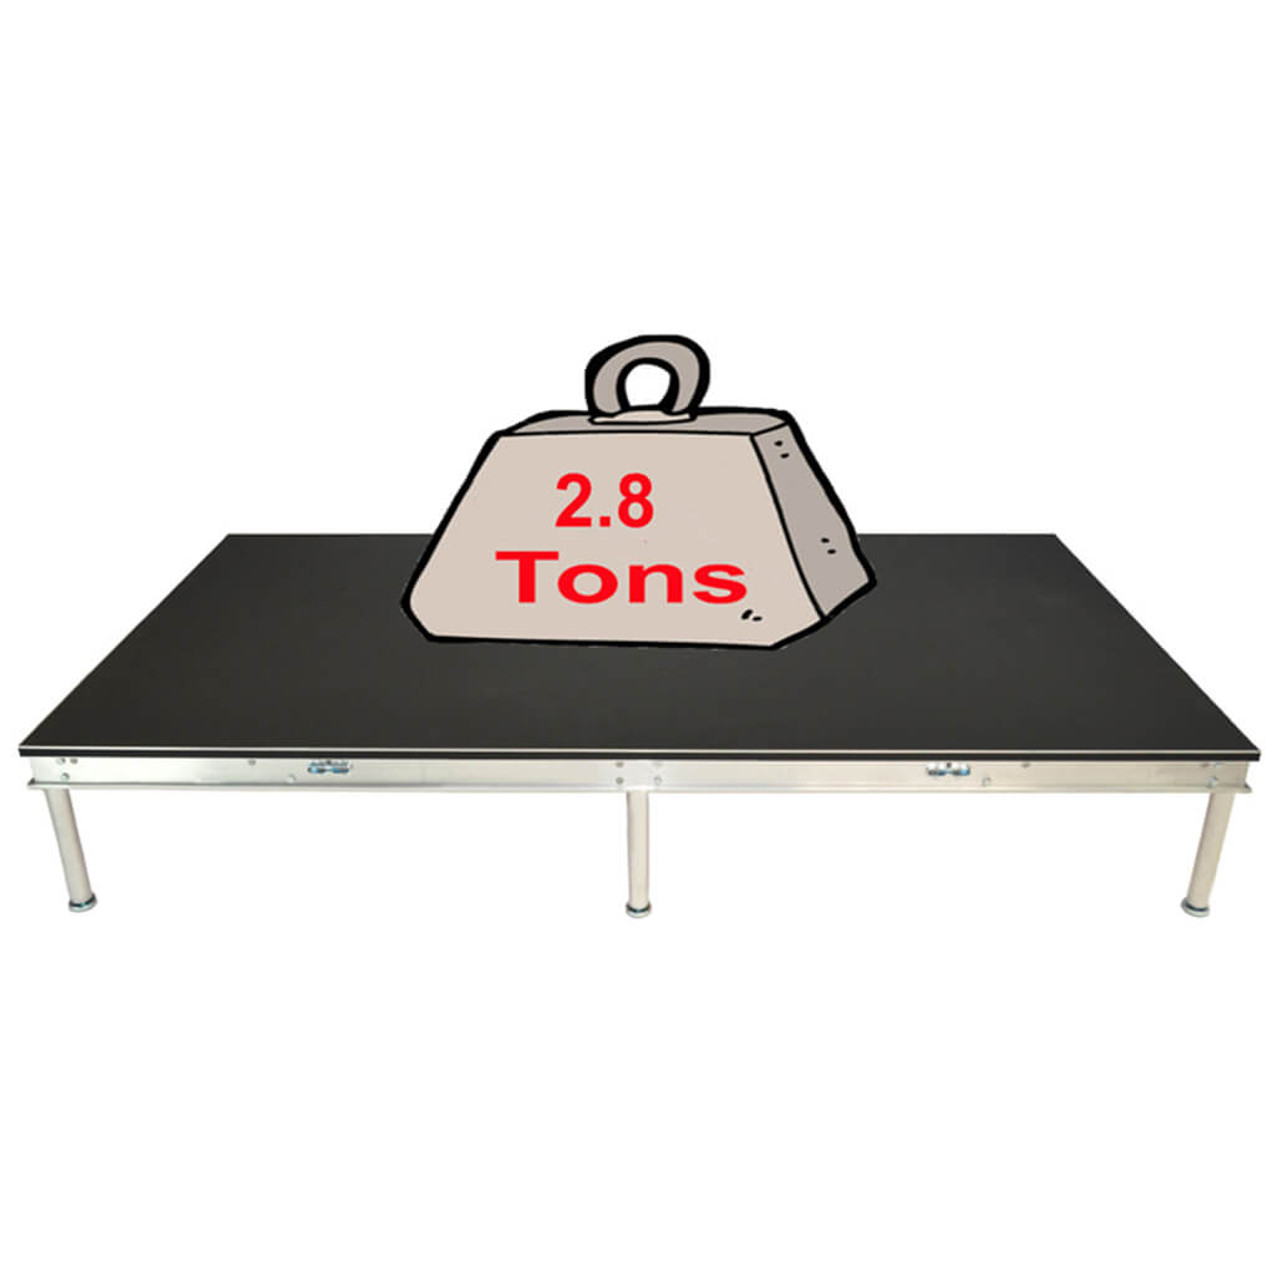 Top rated Quik Stage 12' x 16' High Portable Stage Package with Black Polyvinyl Non-Skid Surface. Additional Heights and Surfaces Available - Holds 2.8 tons per 4 x 8 when spread out evenly